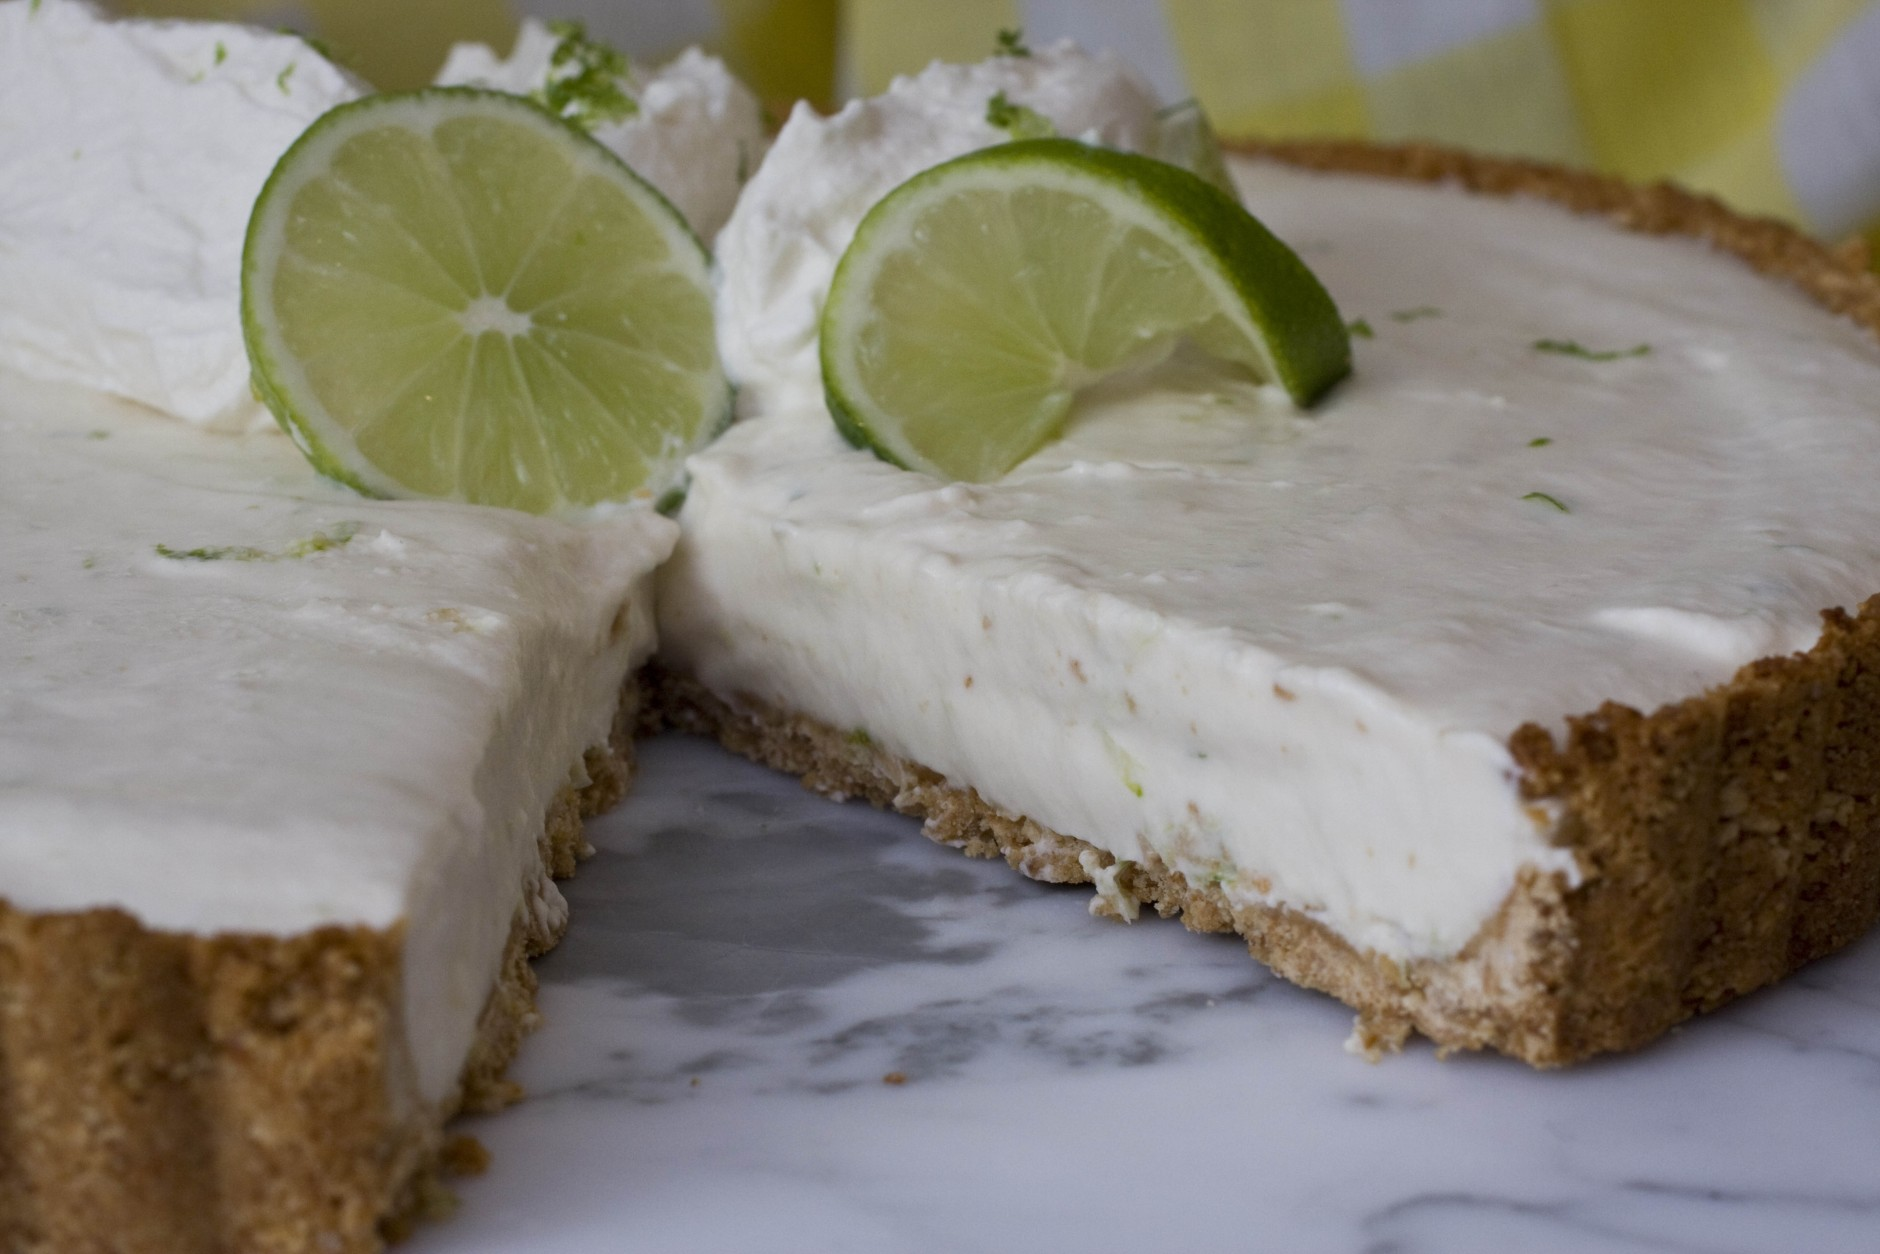 **FOR USE WITH AP LIFESTYLES**  A Frozen Margarita Pie  is seen in this Monday April 6, 2009 photo. Agave syrup, made from a Mexican cactus more known for yielding Tequila, gives this Frozen Margarita Pie its unique, sweet flavor.  (AP Photo/Larry Crowe))